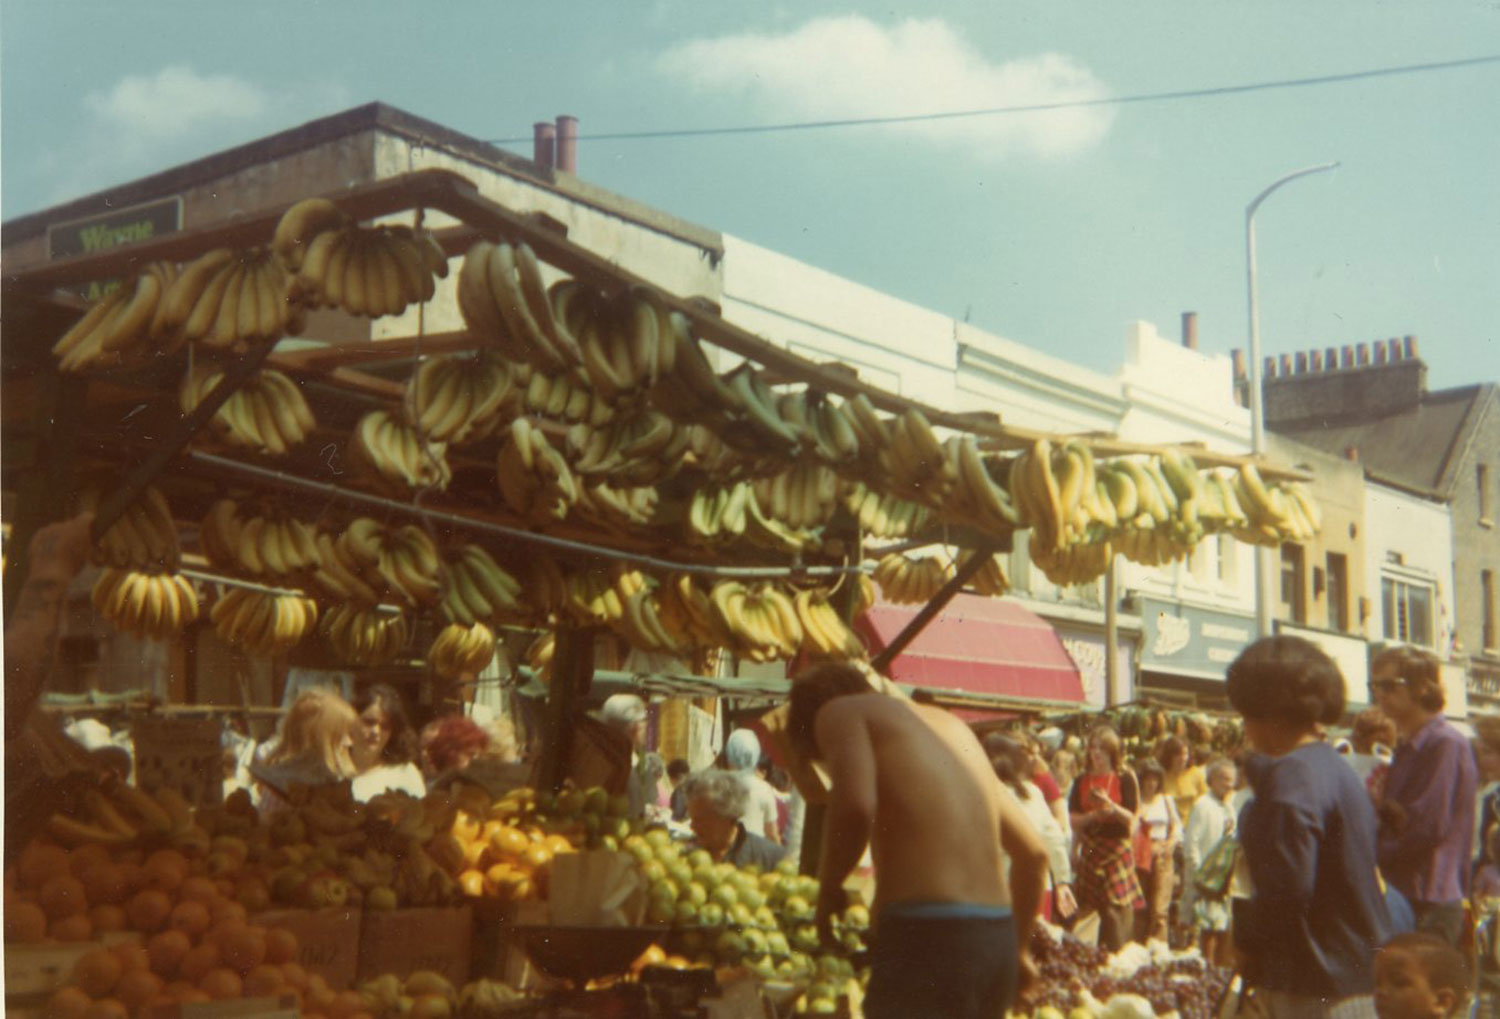 Archive image of shirtless market seller at his fruit stall on Roman Road, Bow, 1990s